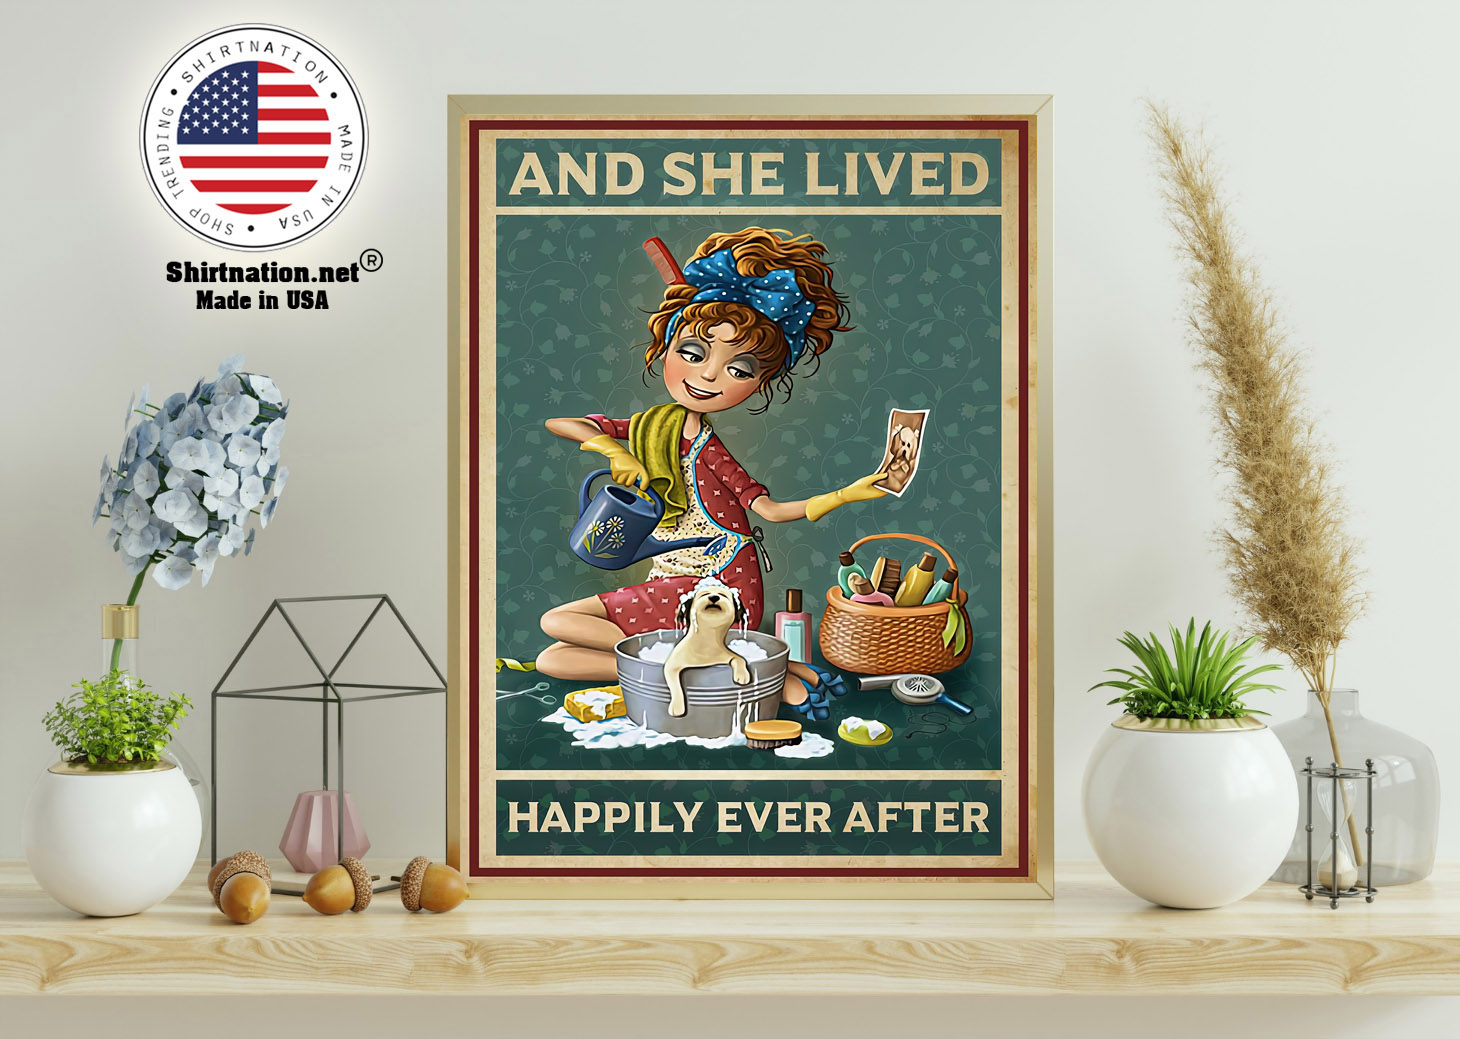 Grooming And she lived happily ever after poster 11